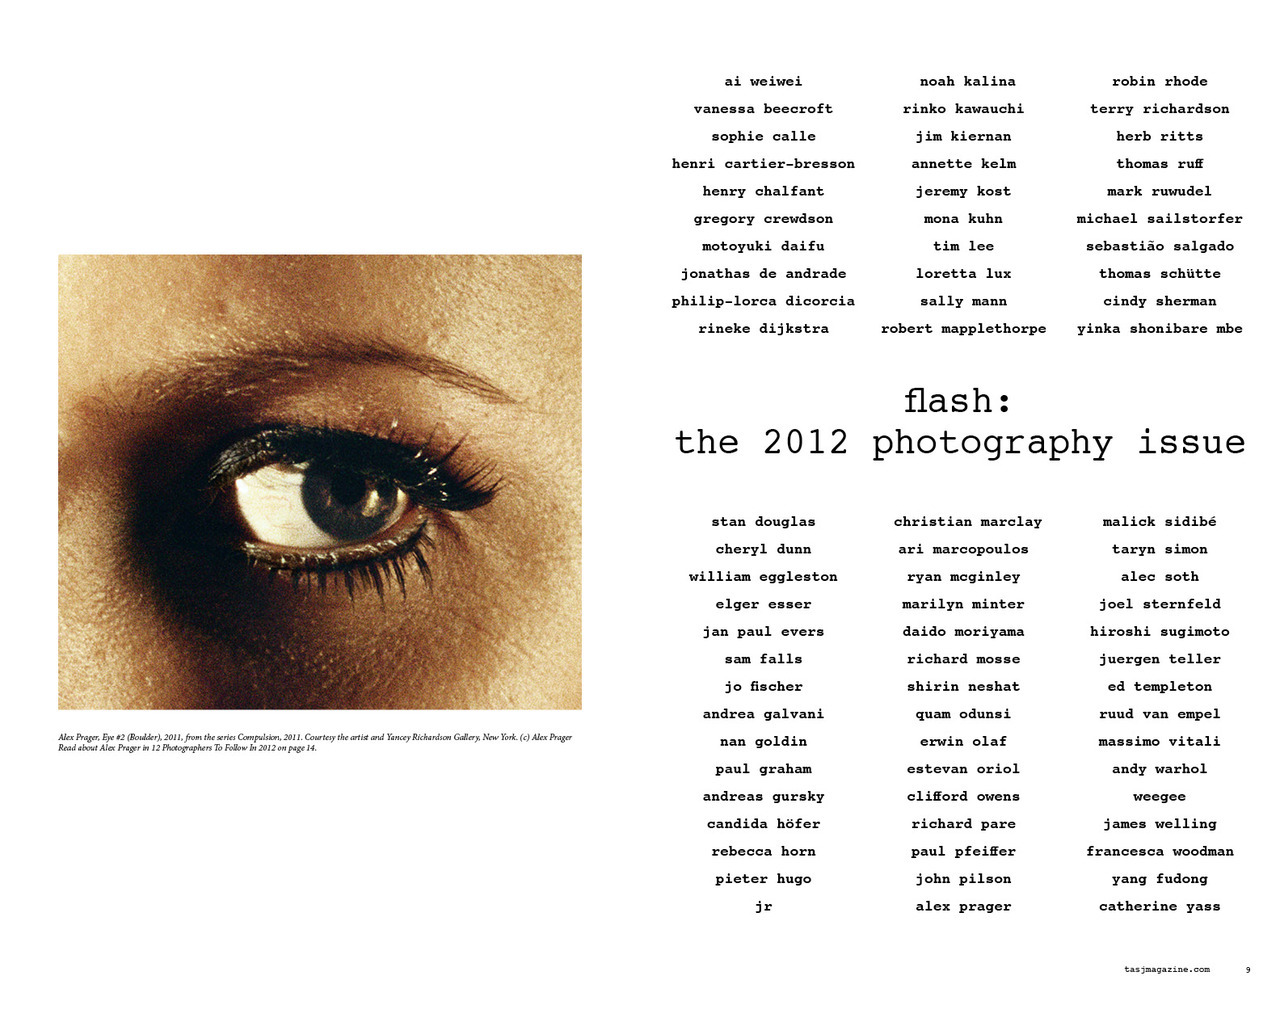 List of artists featured in tasj flash: the 2012 photography issue!